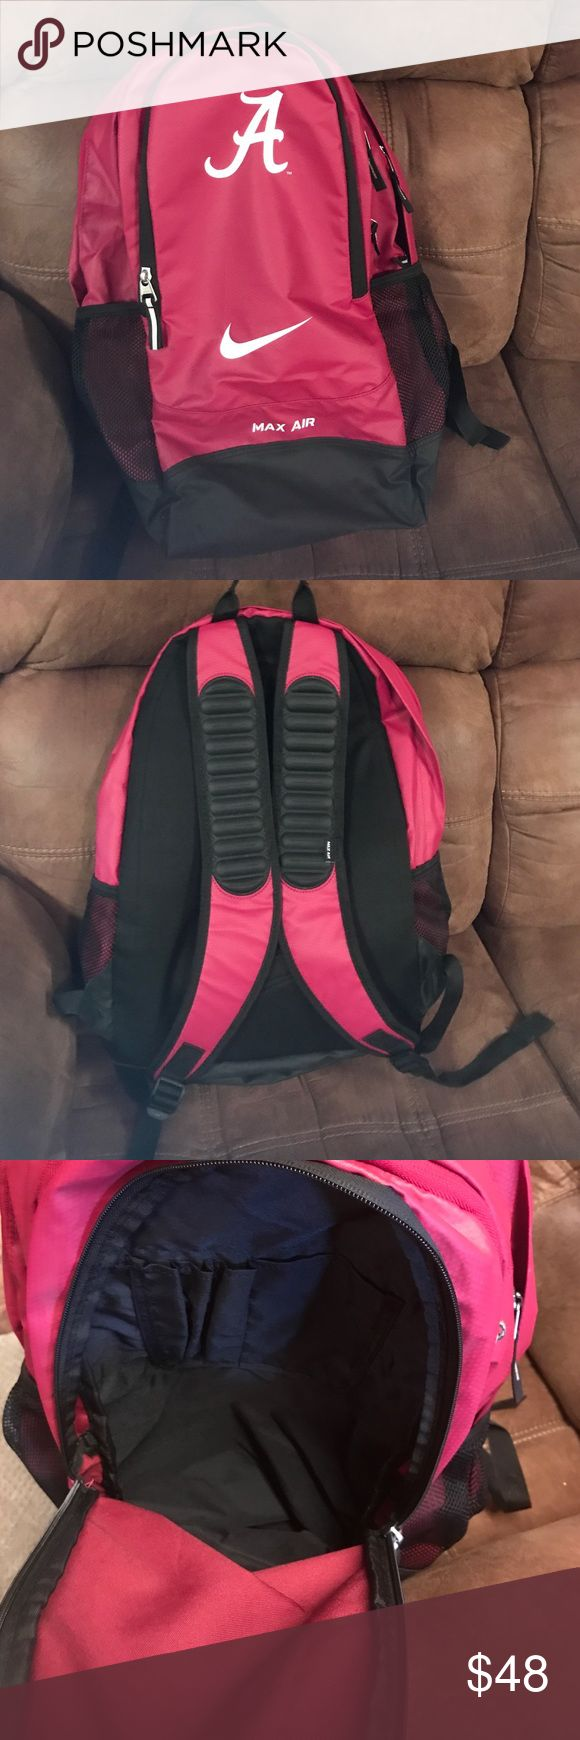 Nike Air Max Backpack Alabama Nike Air Max backpack.  NWOT.  My son received as a gift and never used.  Item#B101. Nike Bags Backpacks